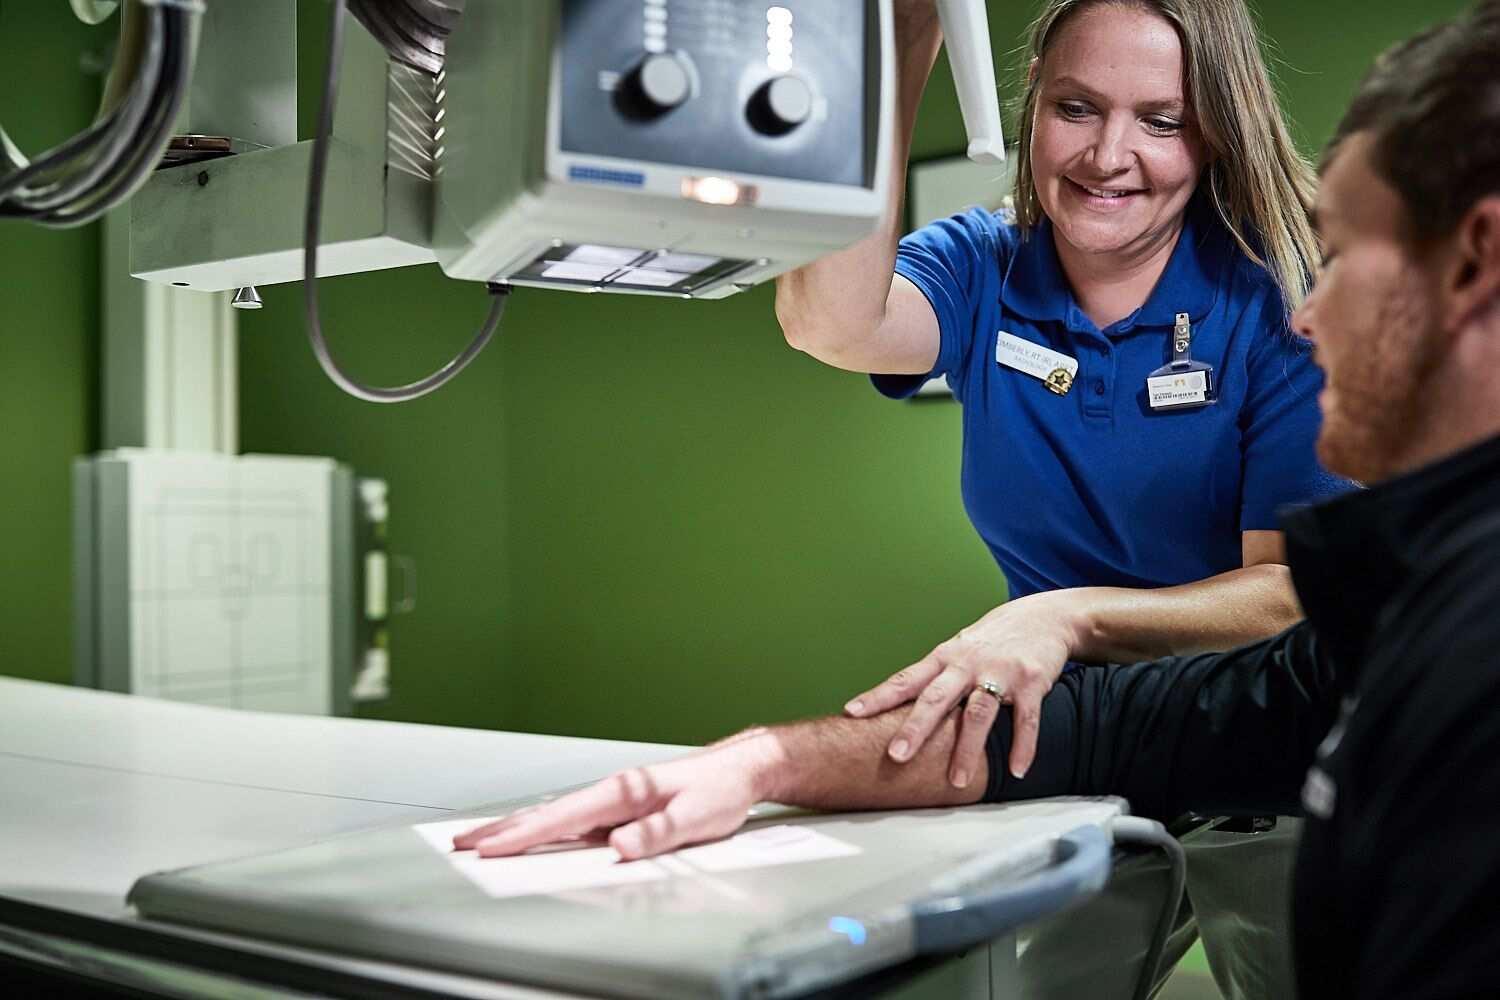 Imaging Orthopaedic Center Of Southern Illinois